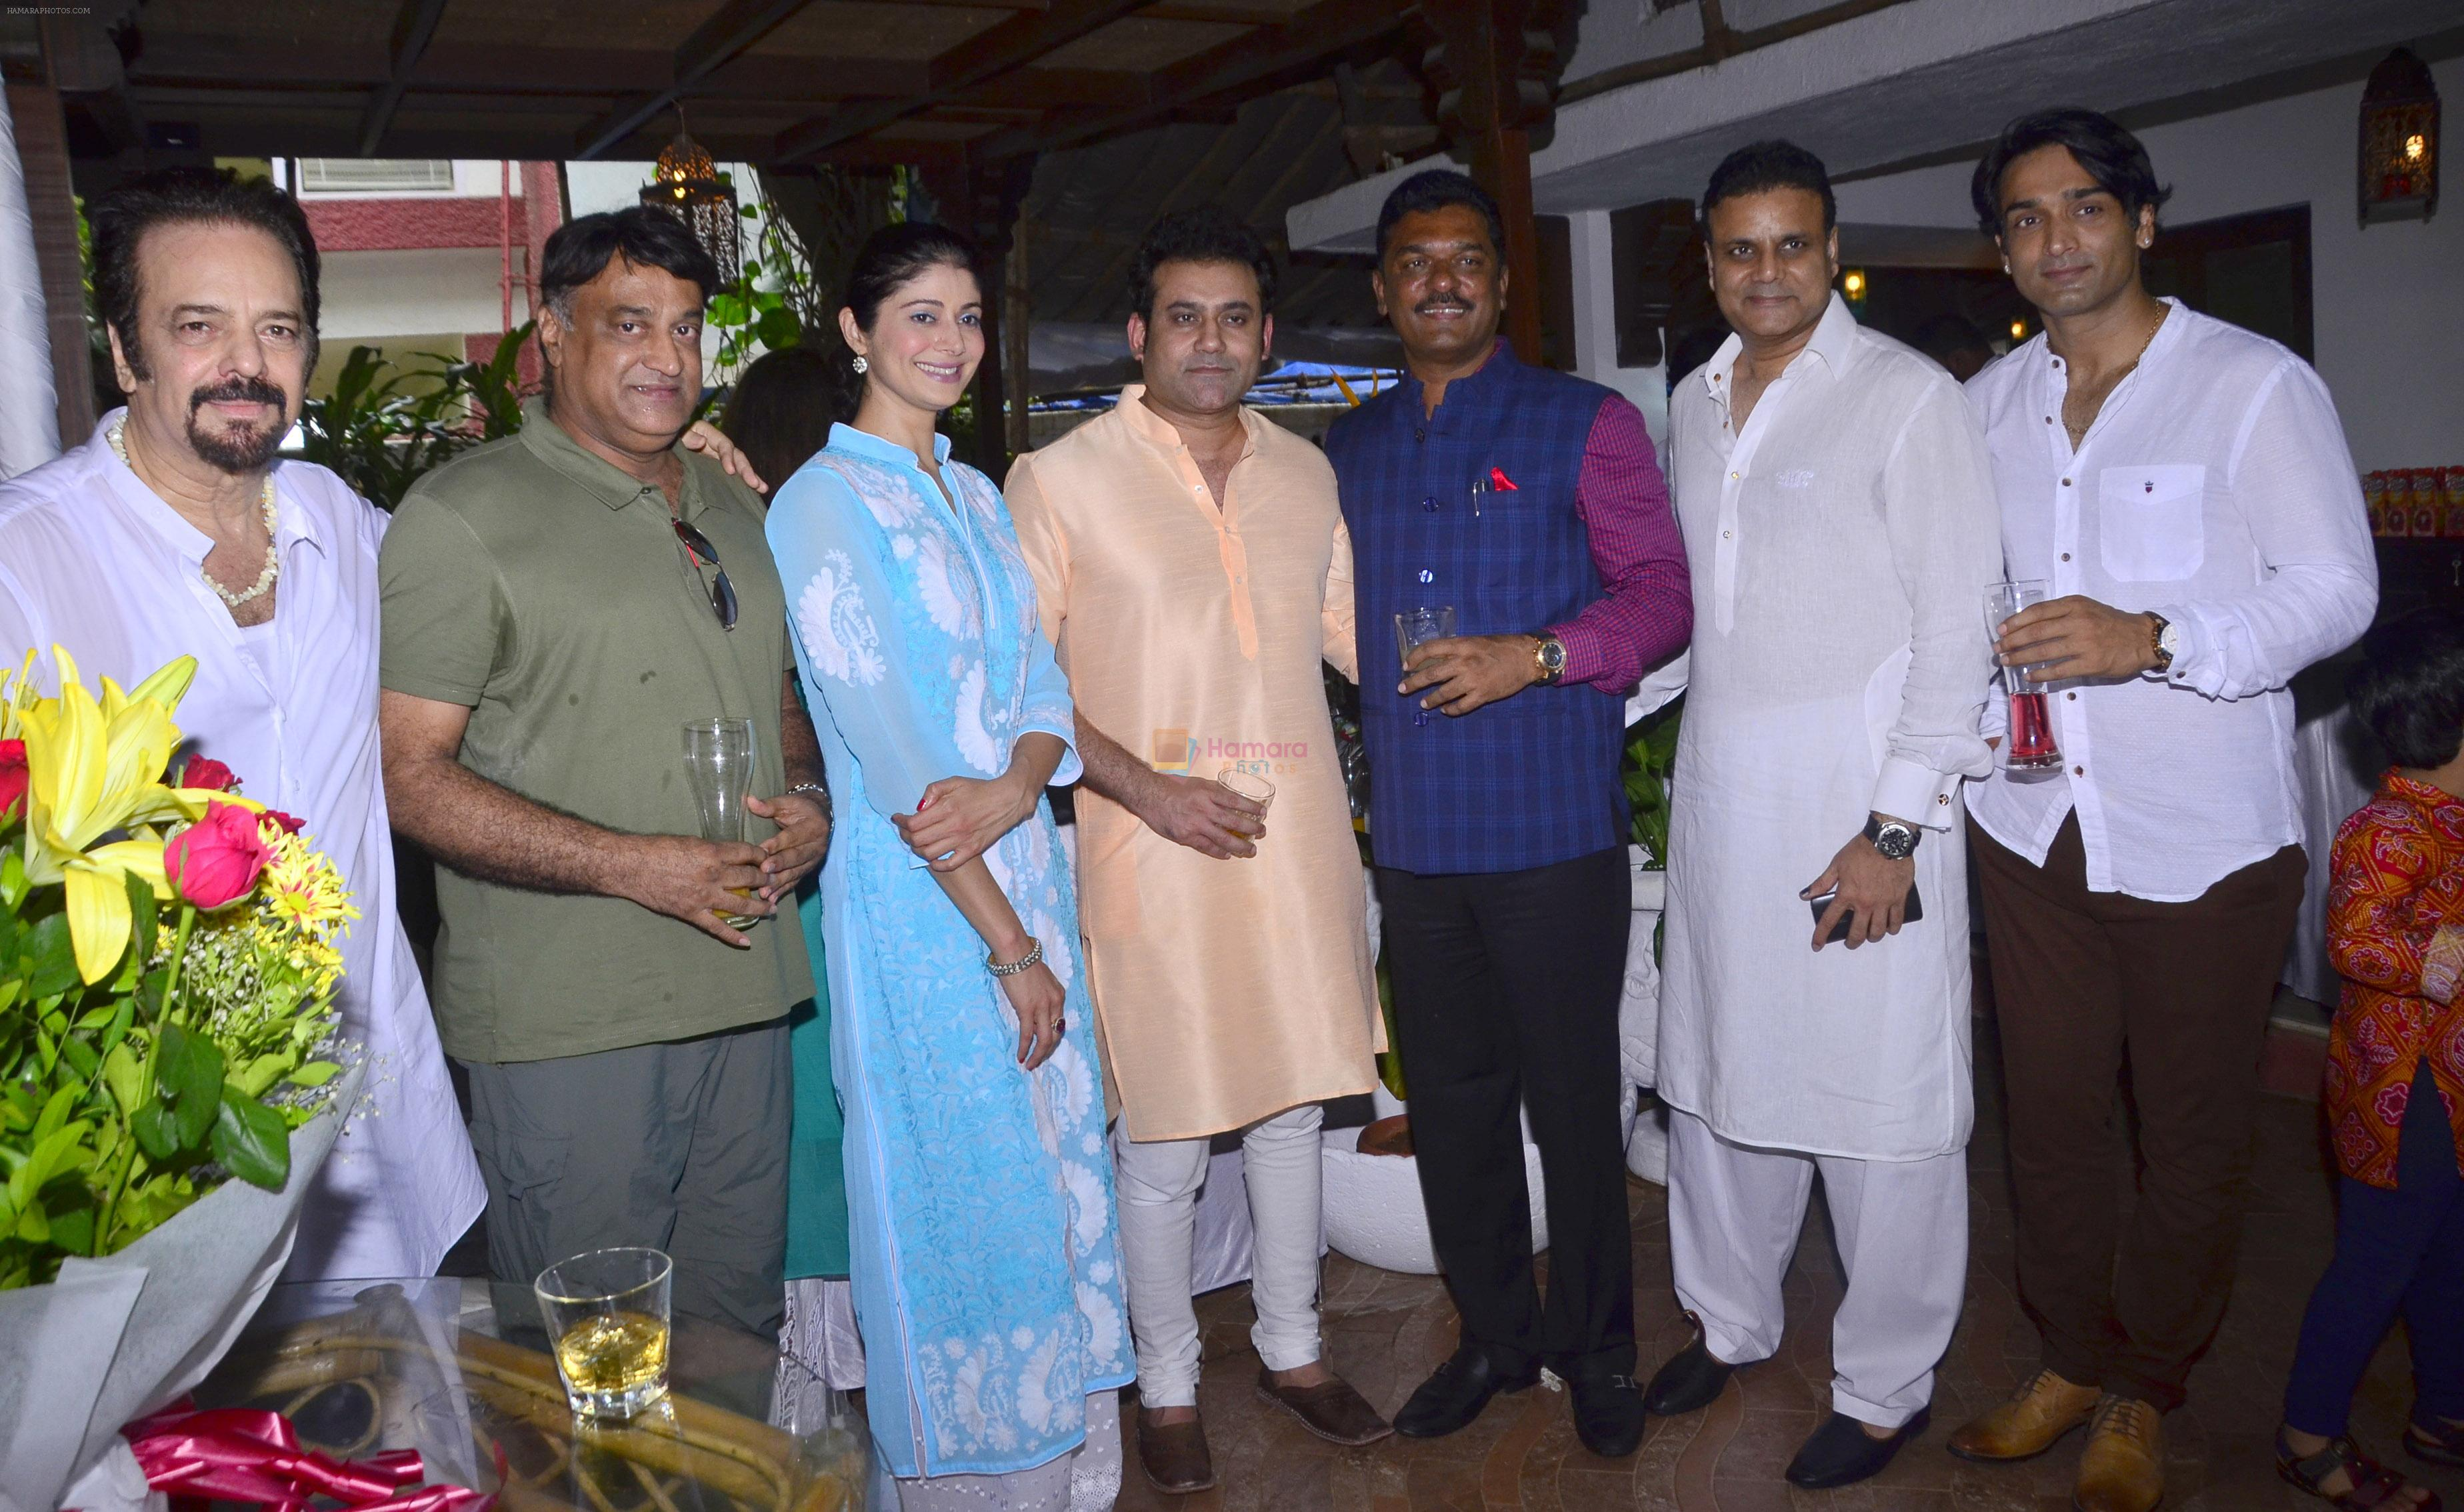 Akbar Khan, Puja Batra, Nitin Kenny, Joe Rajan & Pratap Sarnaik, Bunty Grewal at Akbar Khan's Grand Get - Together at his residence